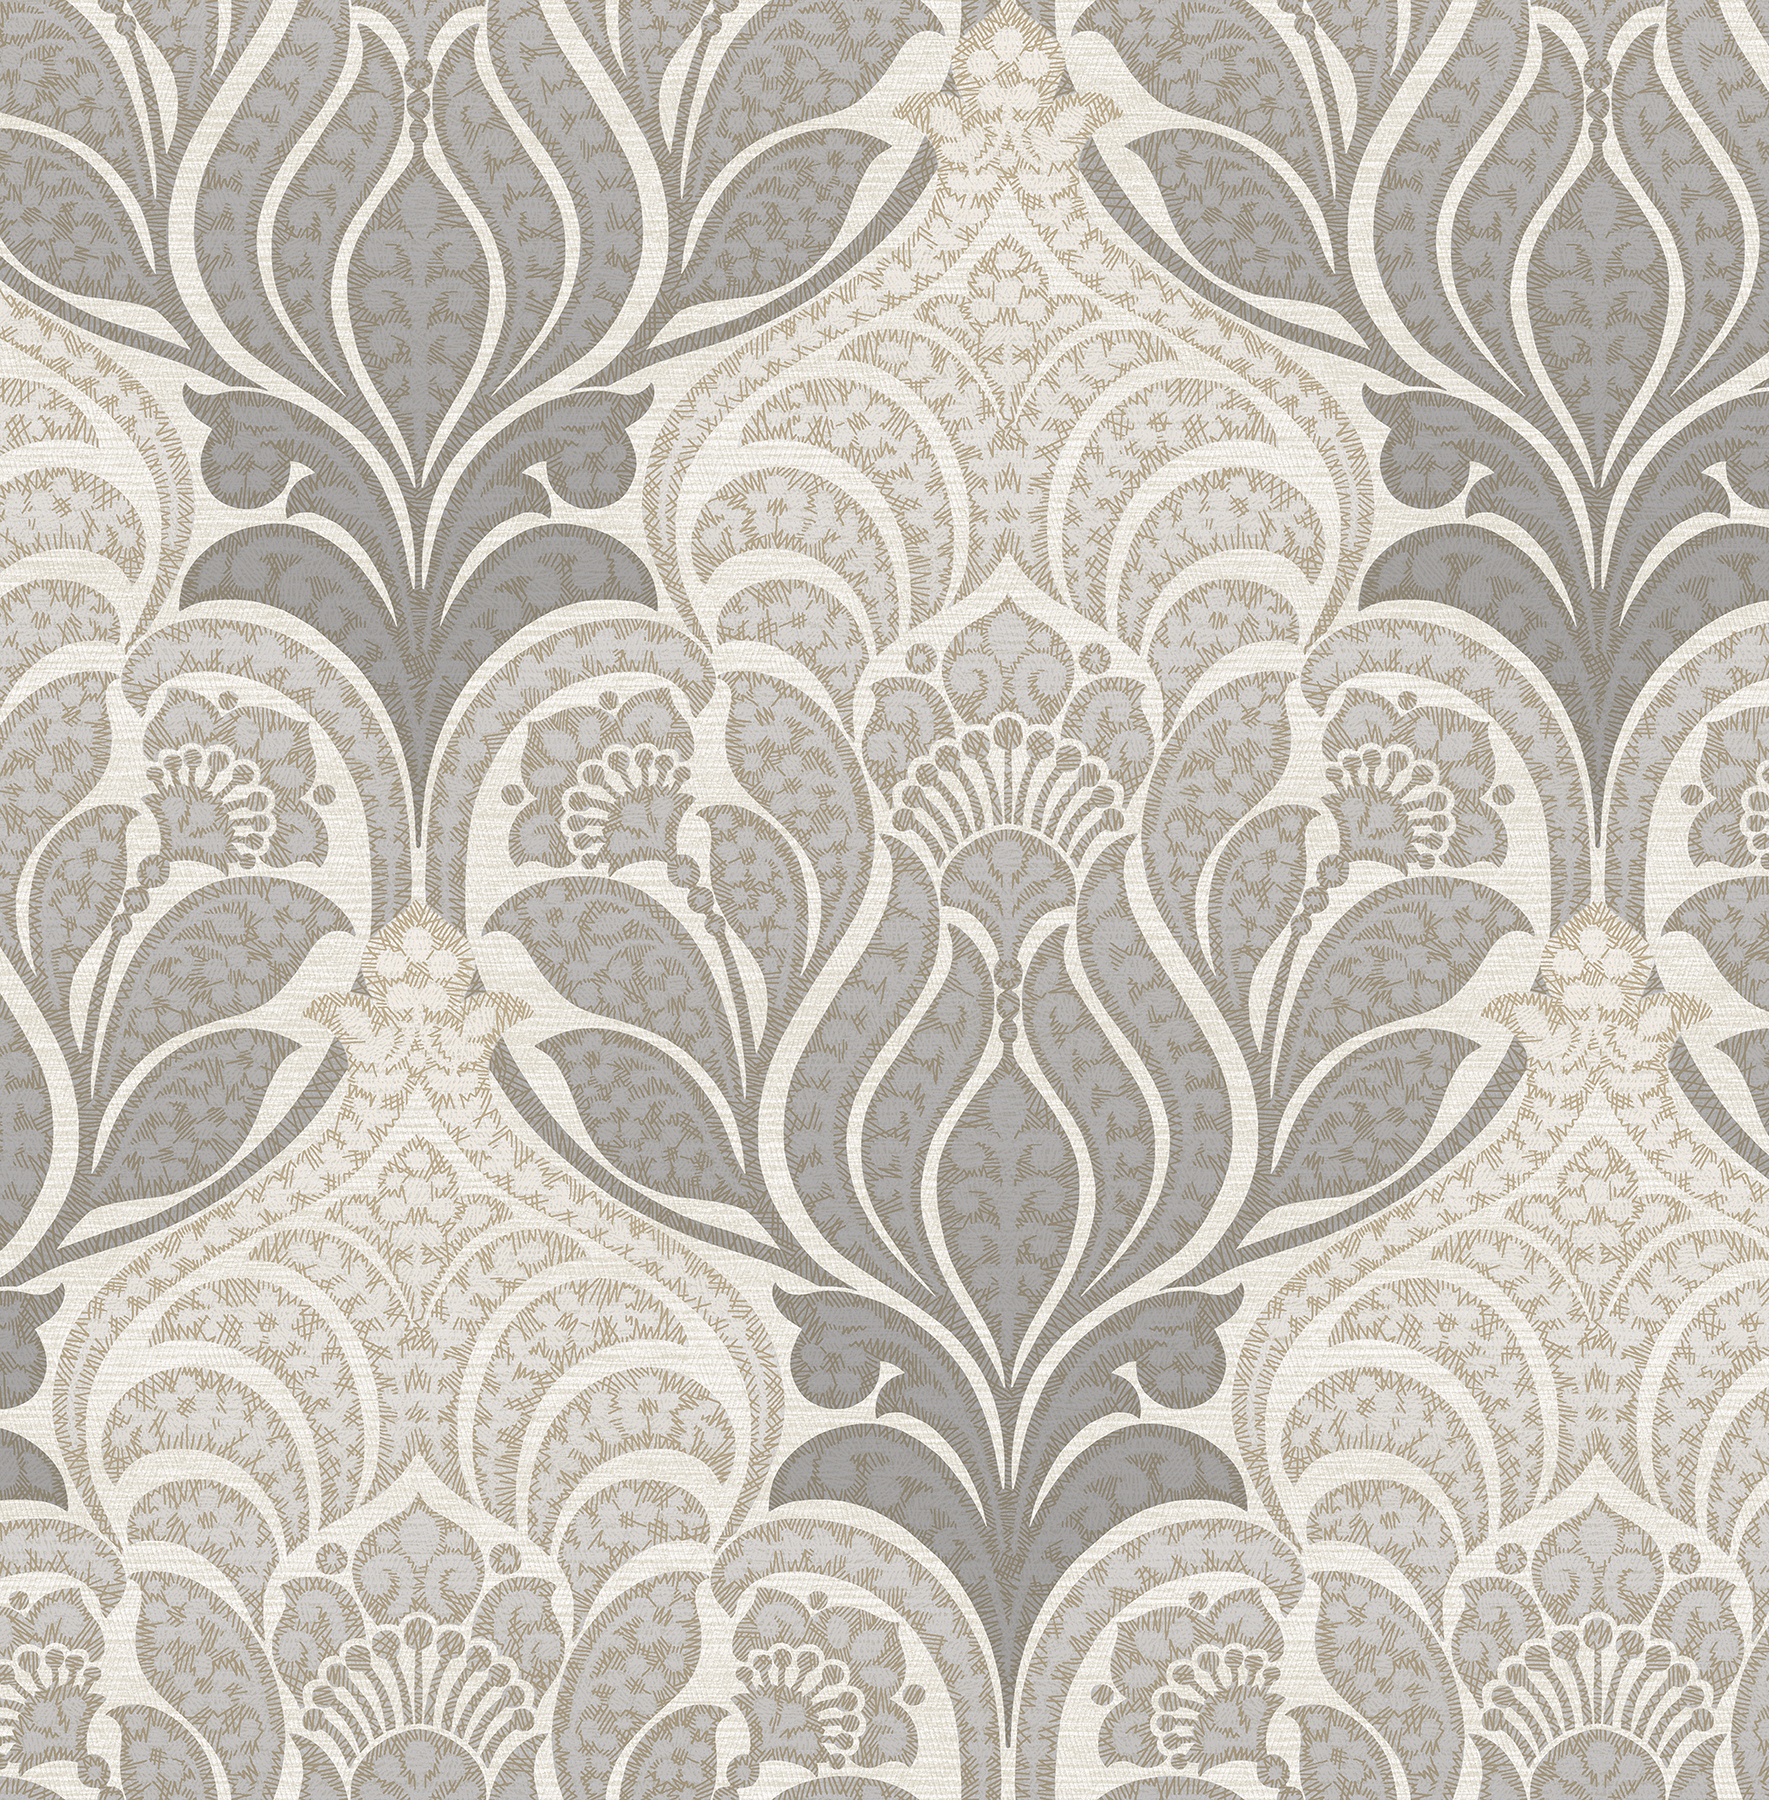 Kenneth James by Brewster 2671-22428 Twill Charcoal Damask Wallpaper